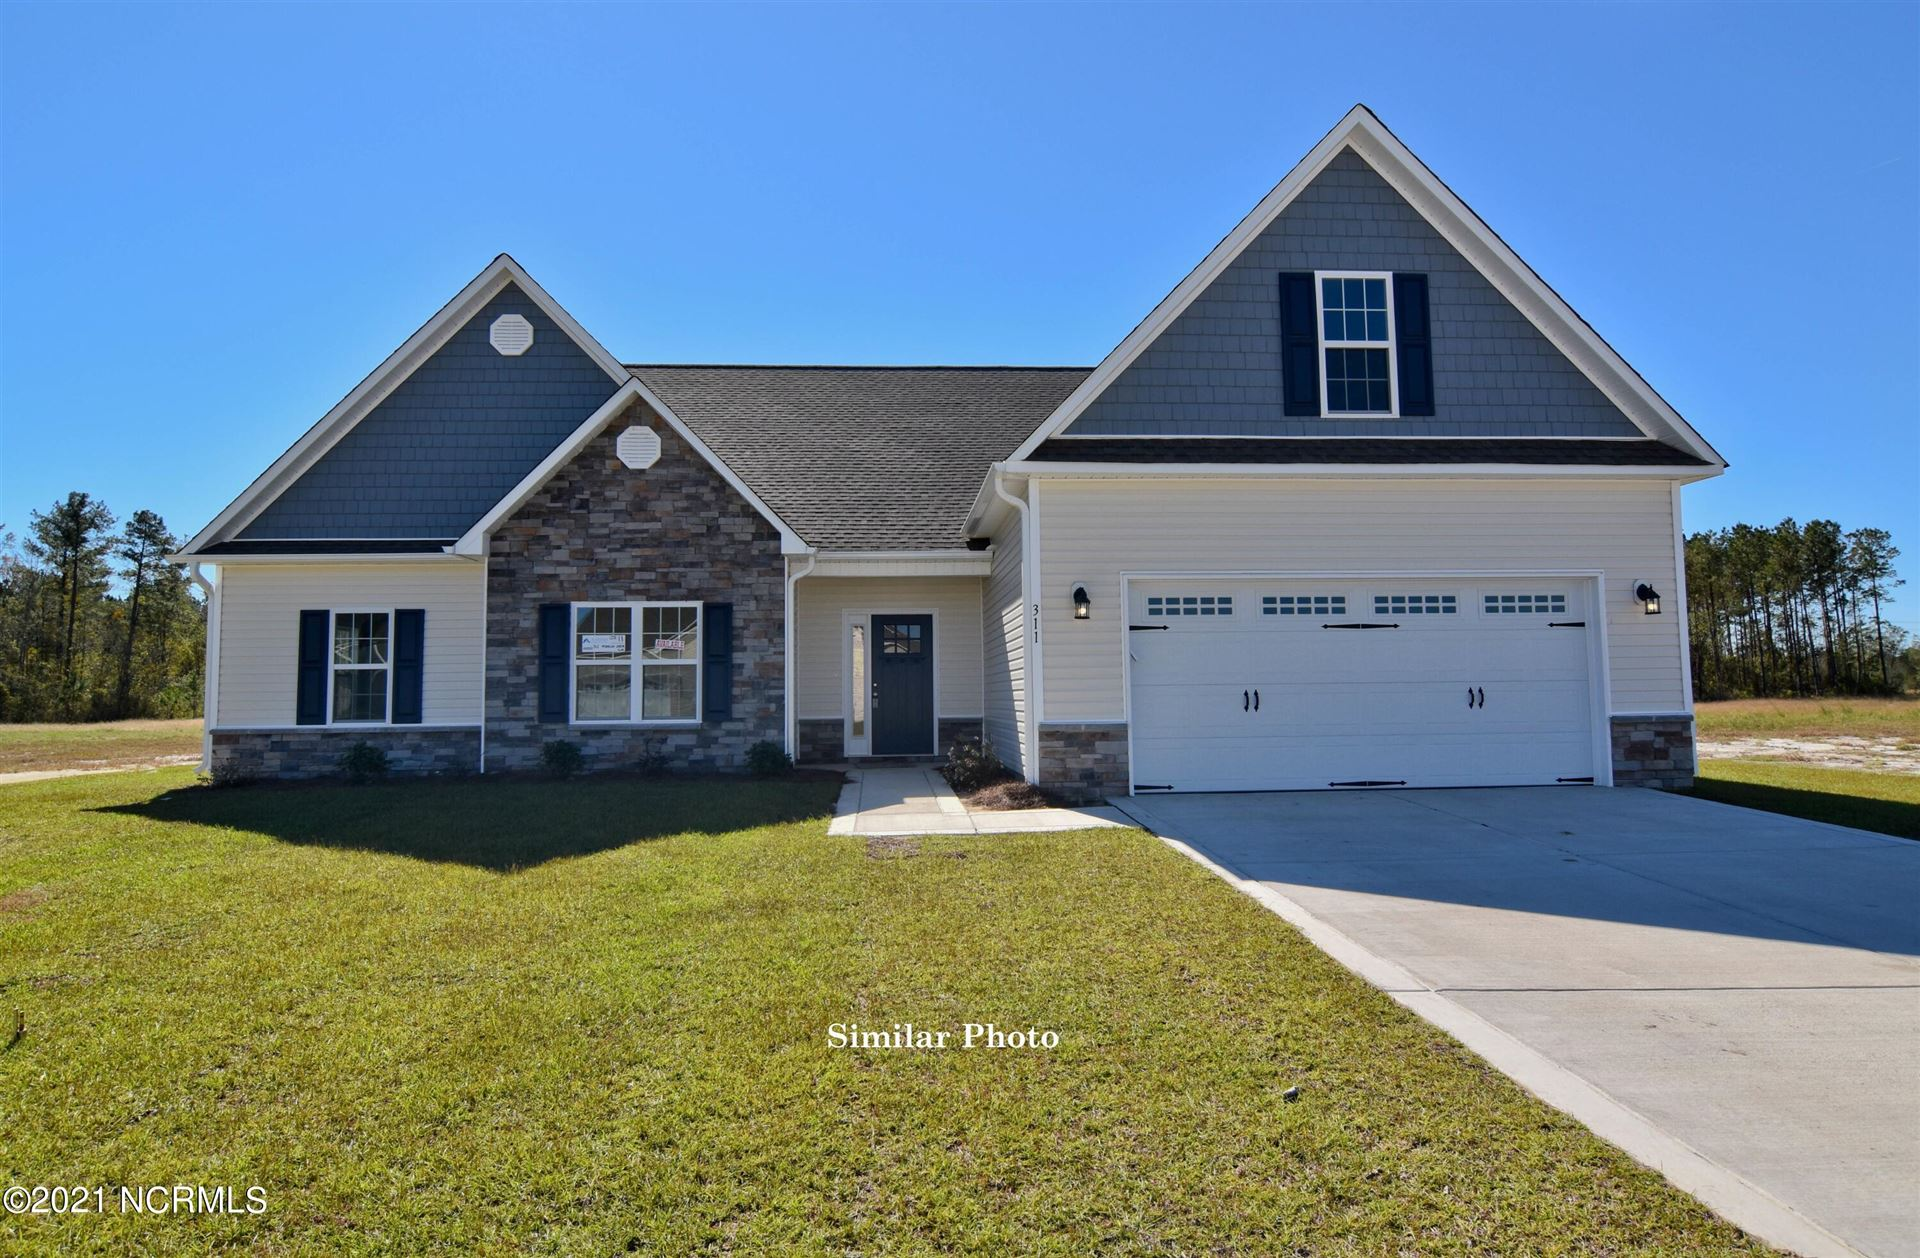 Photo of 112 Evergreen Forest Drive, Sneads Ferry, NC 28460 (MLS # 100287916)